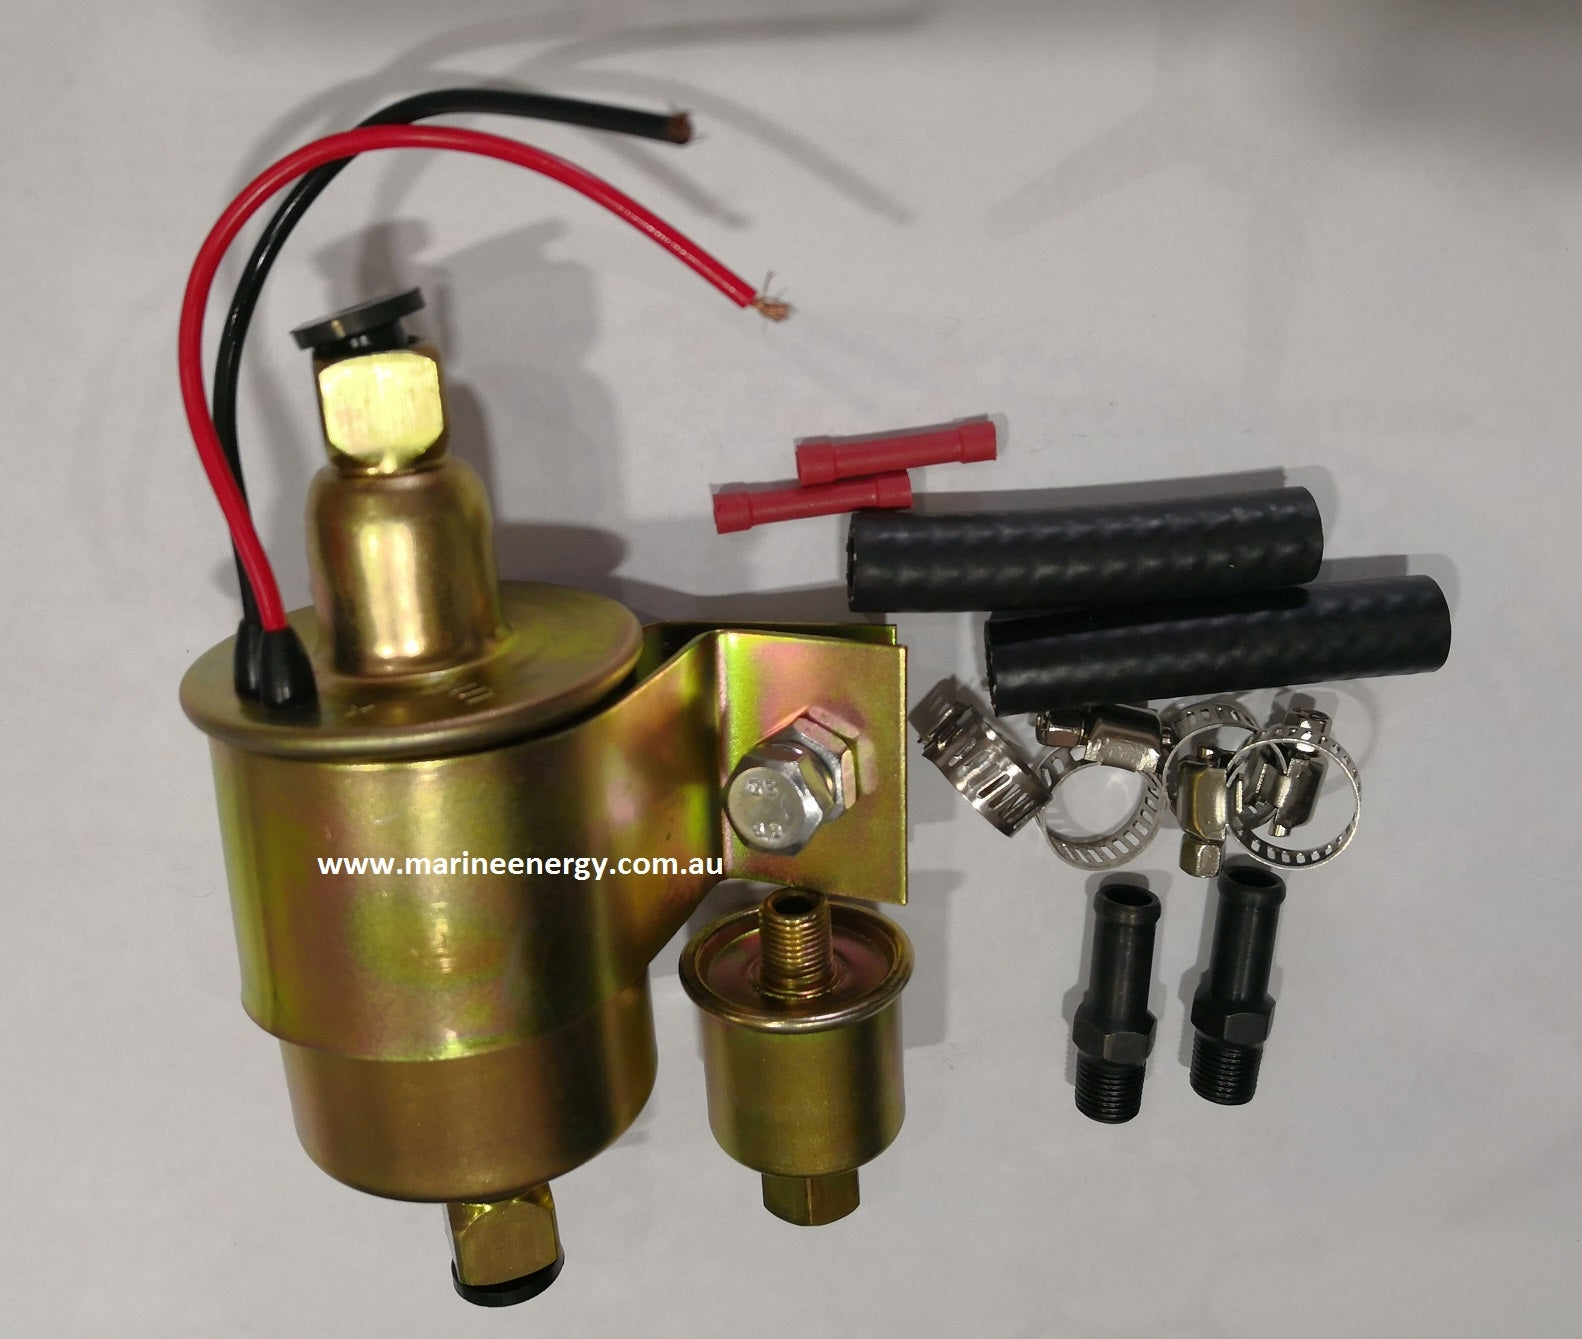 12V Facet Pump Kit for Diesel Fuel